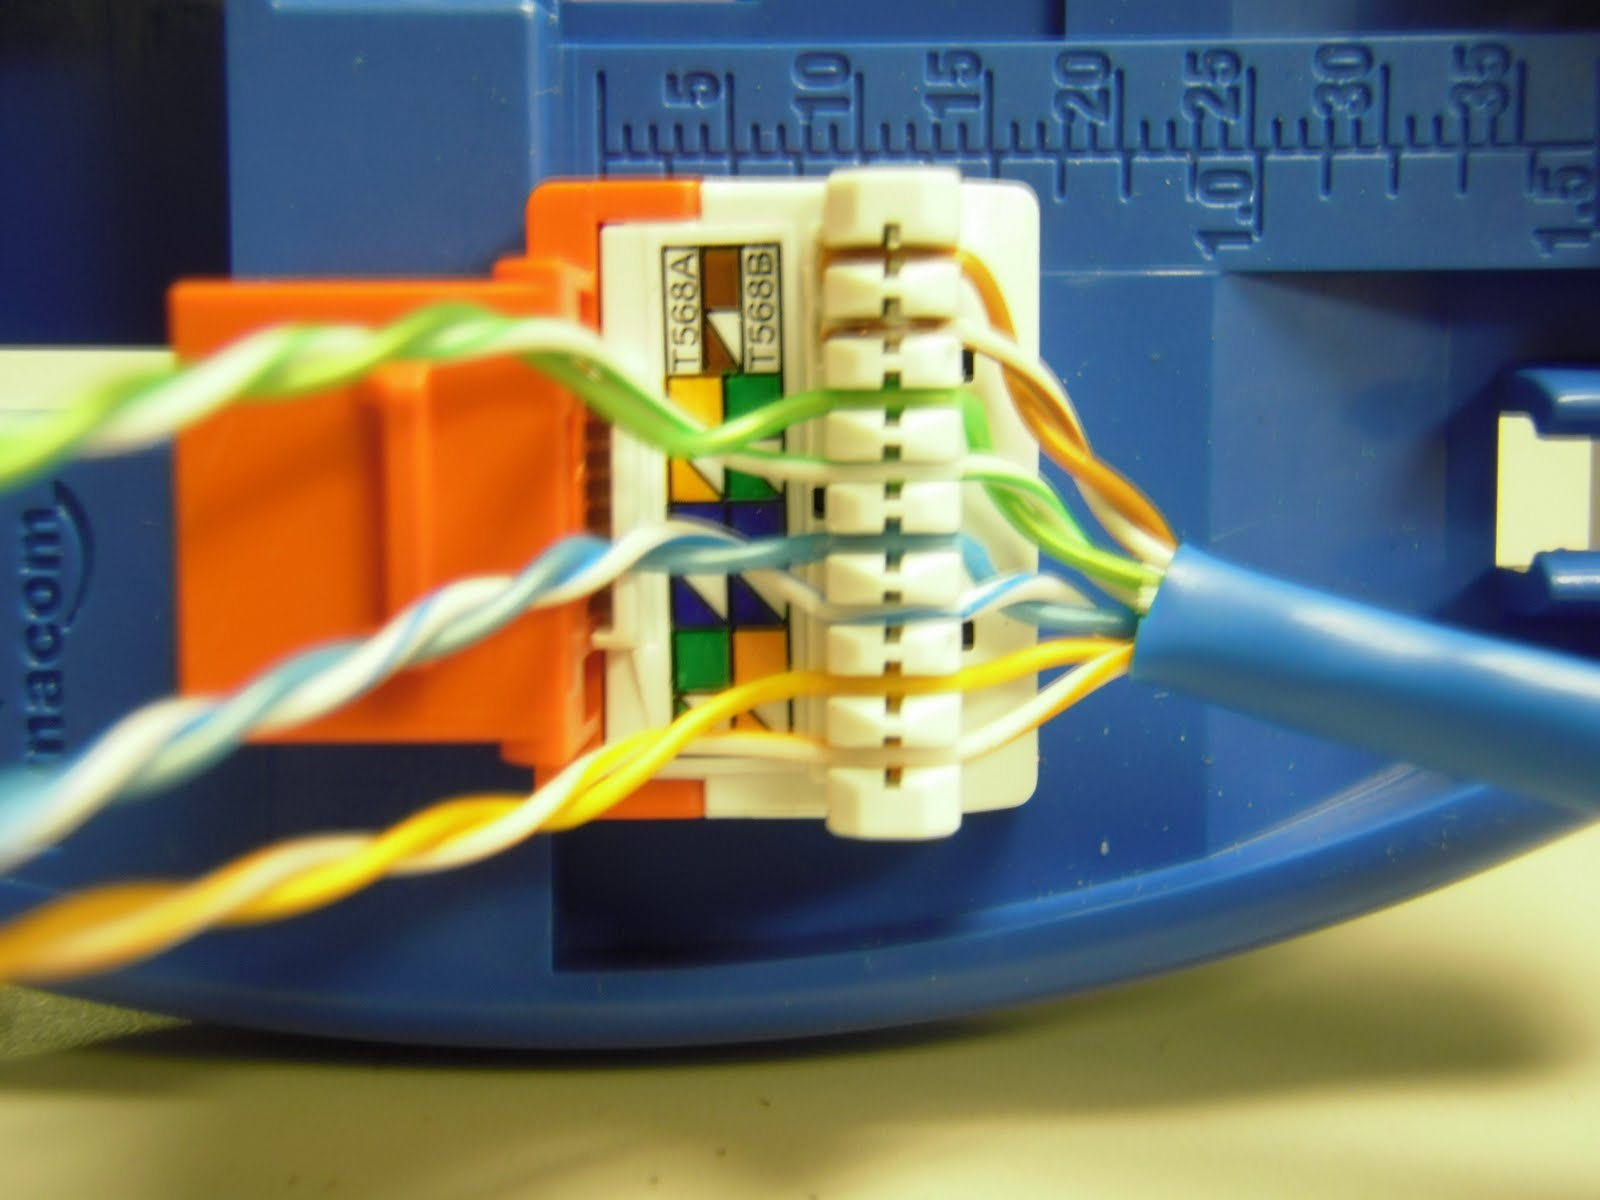 The Trench How To Punch Down Cat5e Cat6 Keystone Jacks Rj45 Color Code Along With Cat 5 Cable Pinout Wiring Together